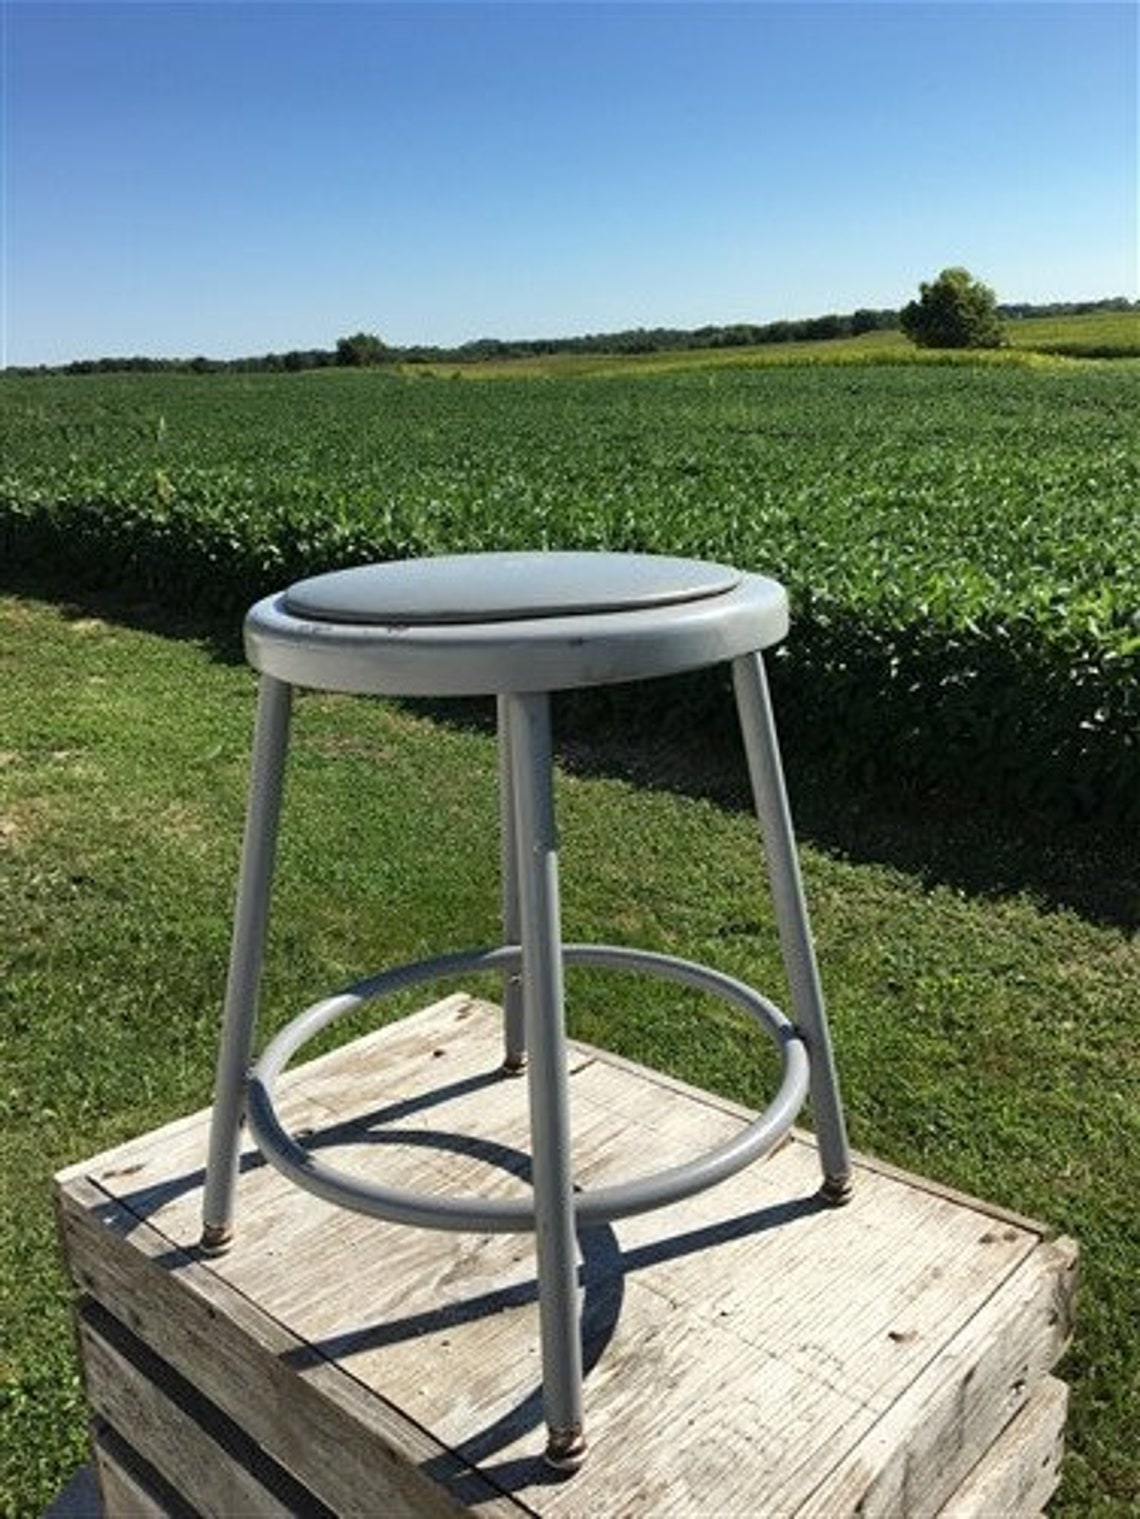 Industrial Gray Metal Drafting Stool Round Adjustable Metal Factory Stool c,Rustic Bar Stool Chair, Work Shop Stool Machine Age Stool